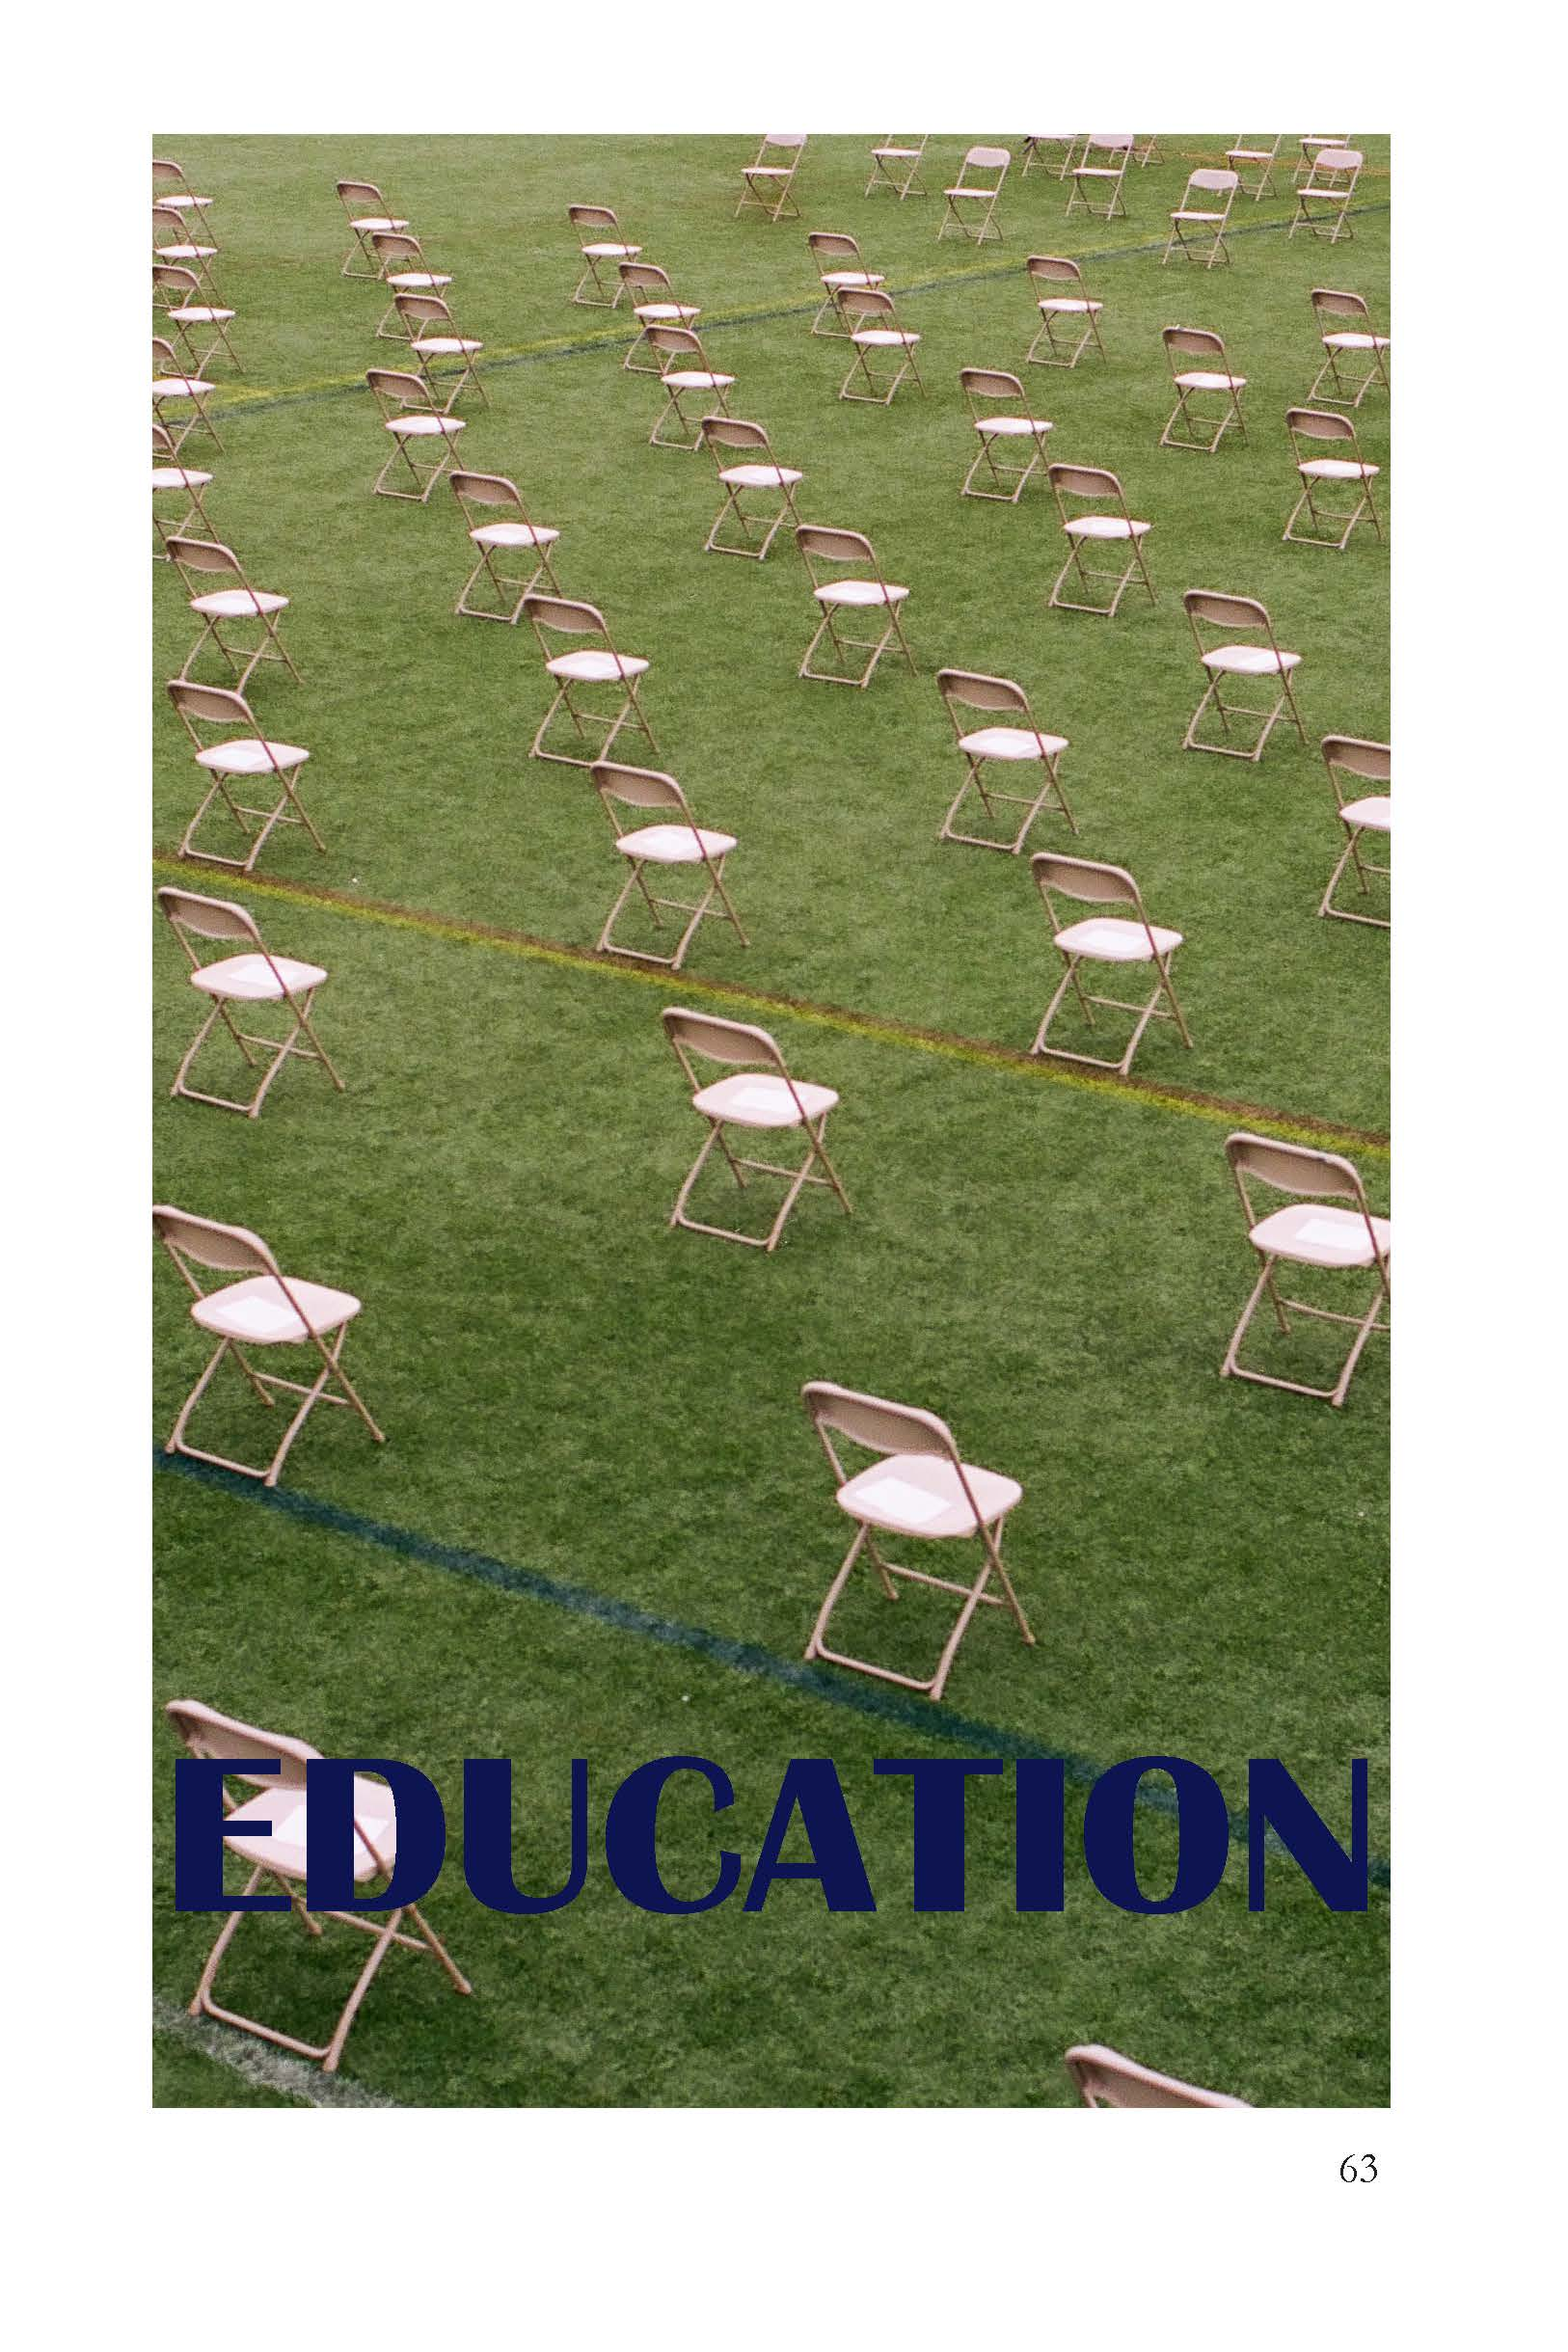 Image of white, folding chairs - spaced 6ft apart on a grass field - EDUCATION sectionpage